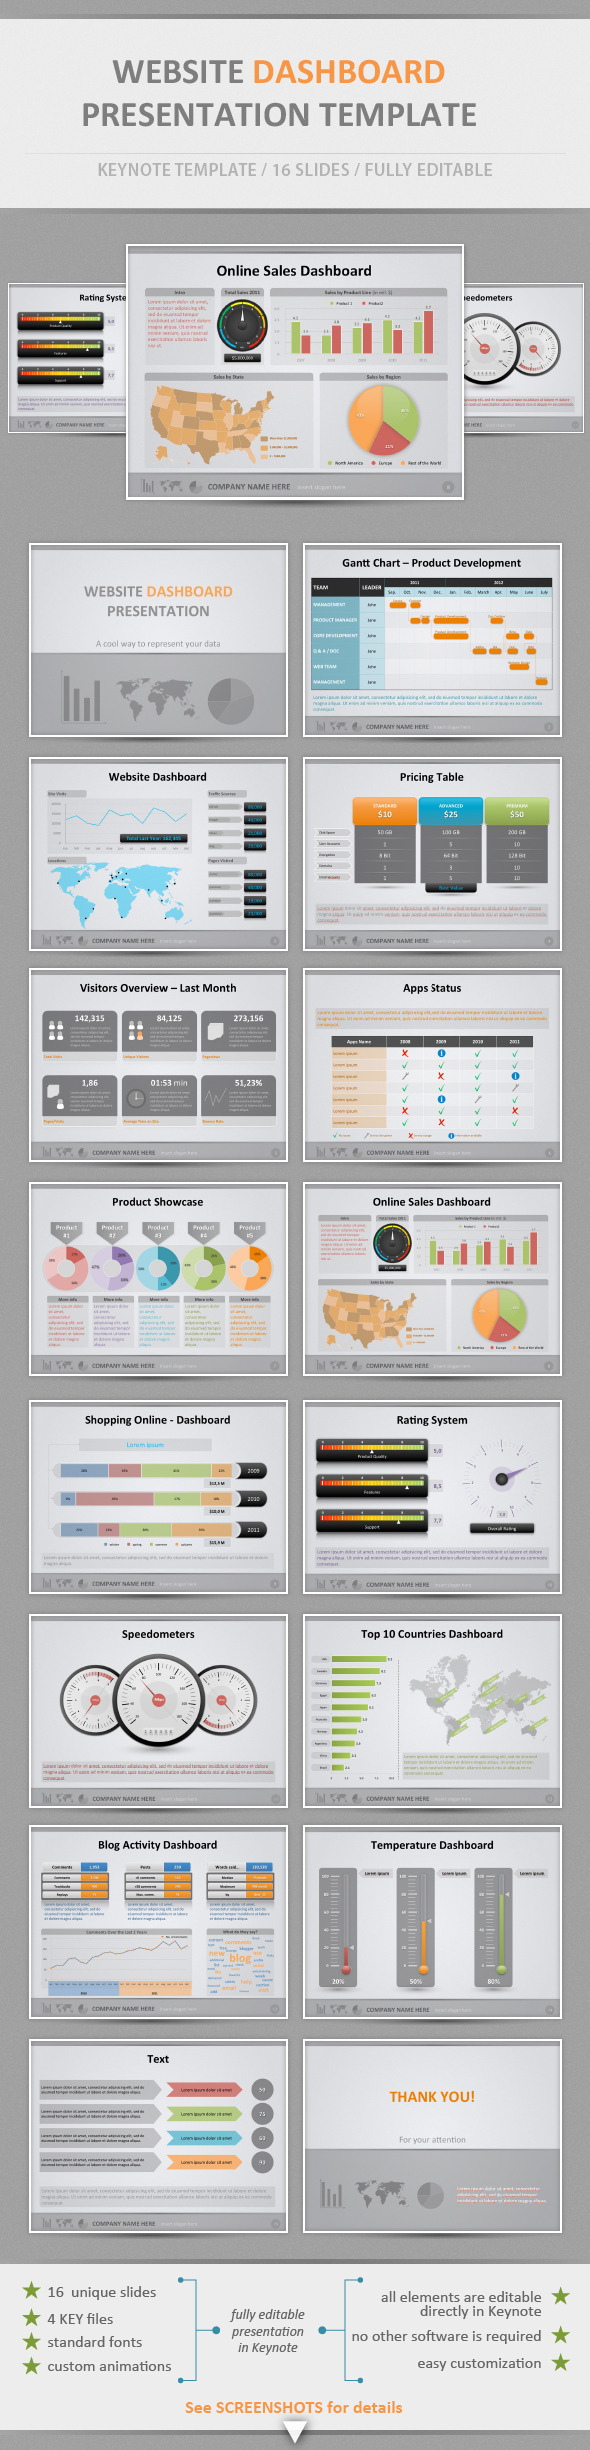 Website Dashboard Presentation Template - Keynote Templates Presentation Templates